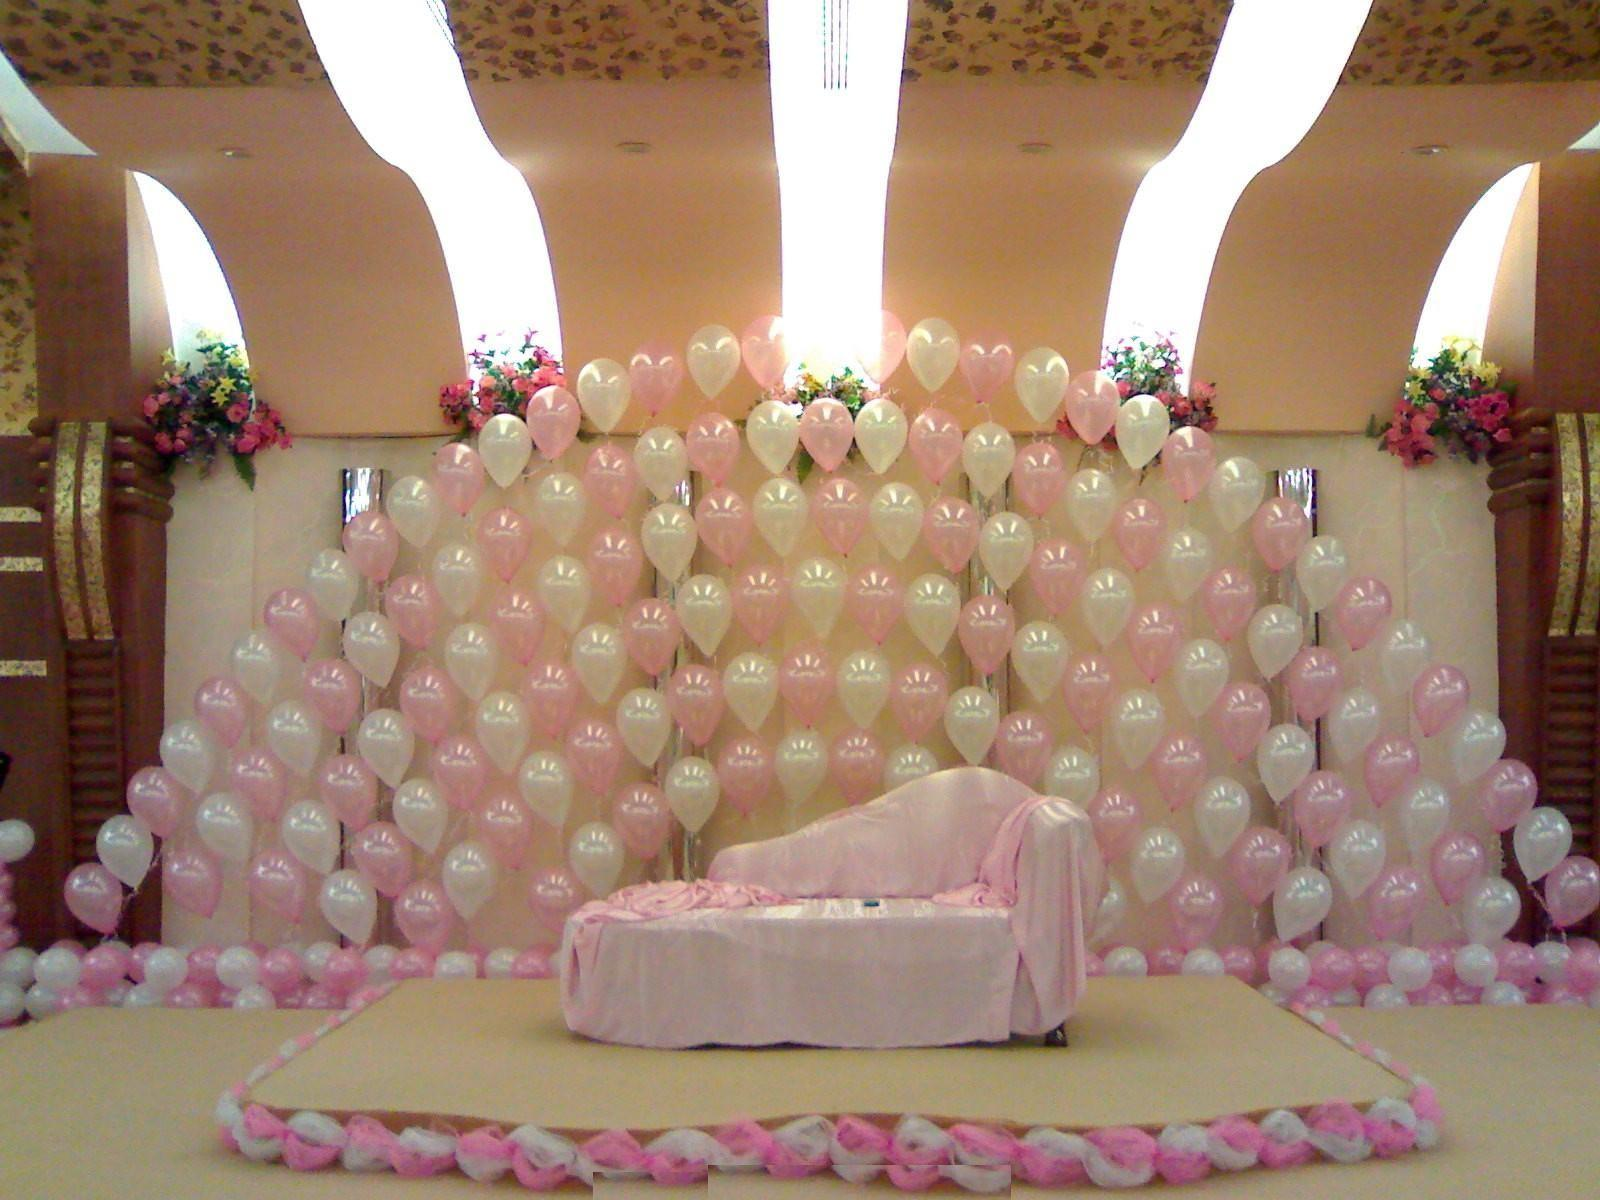 Ballons Wedding Stage Decoration Ideas Weddings Eve